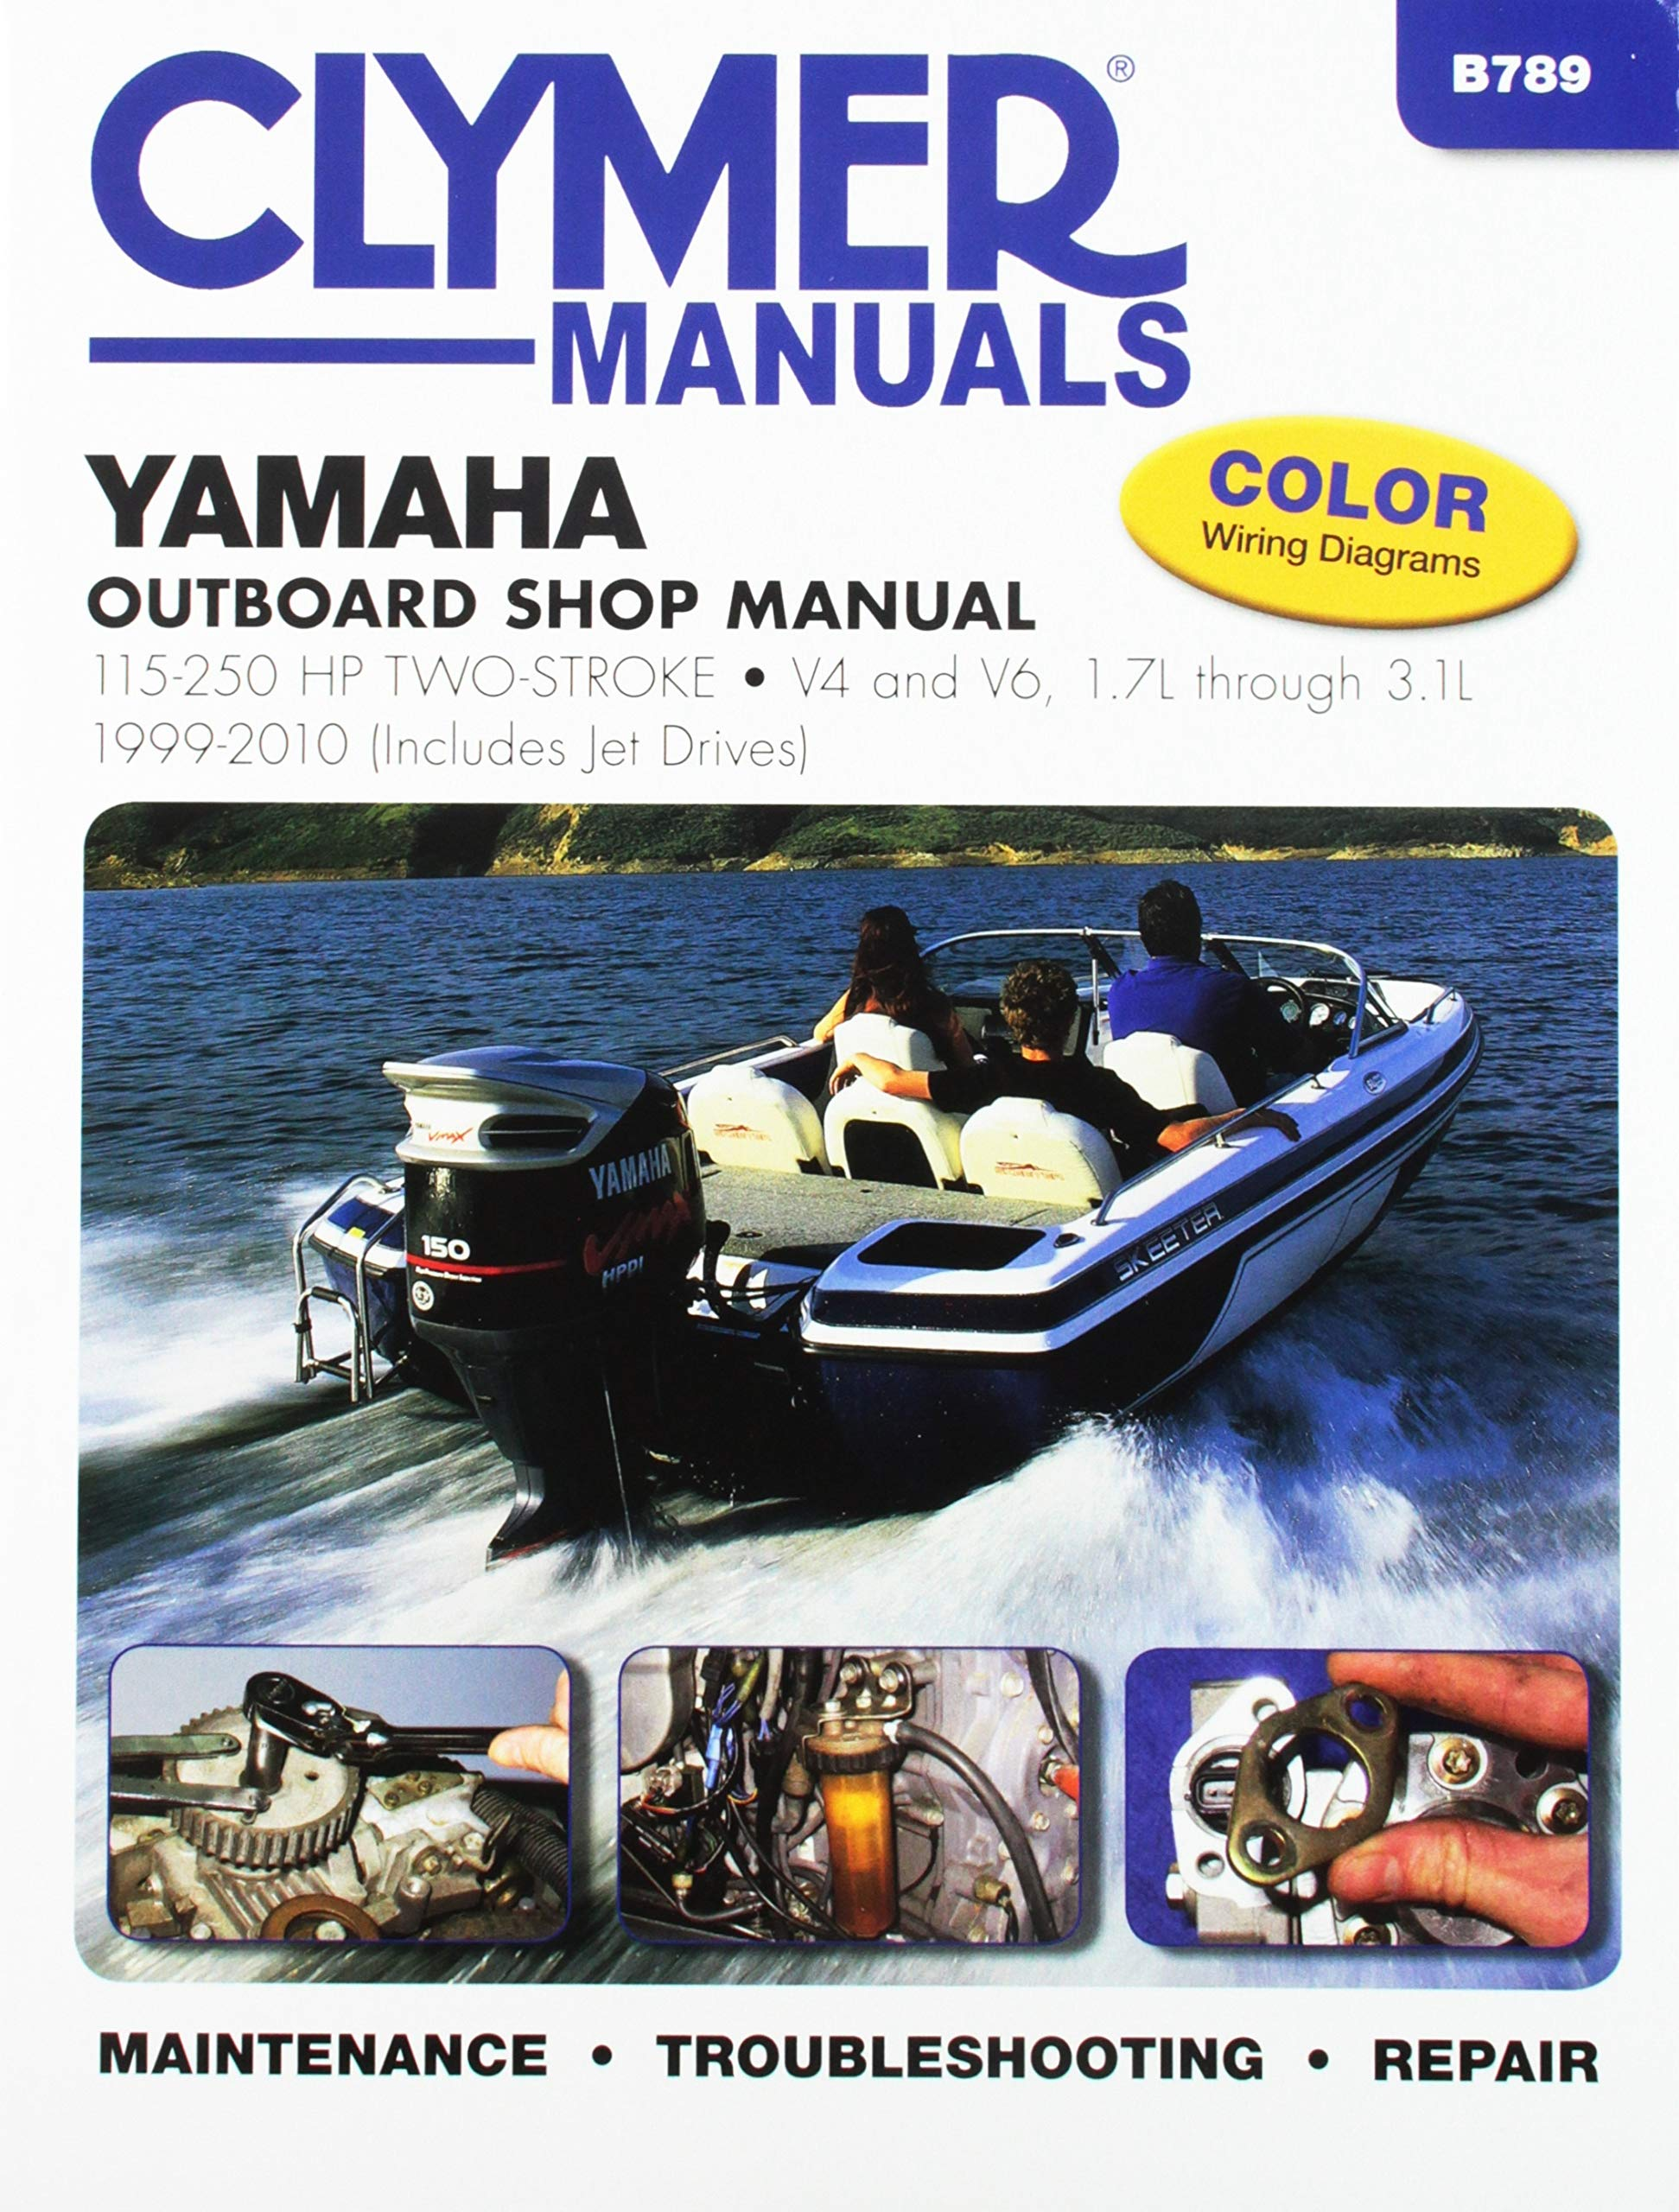 Yamaha 115-250 hp Two-Stroke Outboards 1999-2010 (Includes Jet Drives) (Clymer Marine) by Haynes Manuals N. America, Inc.